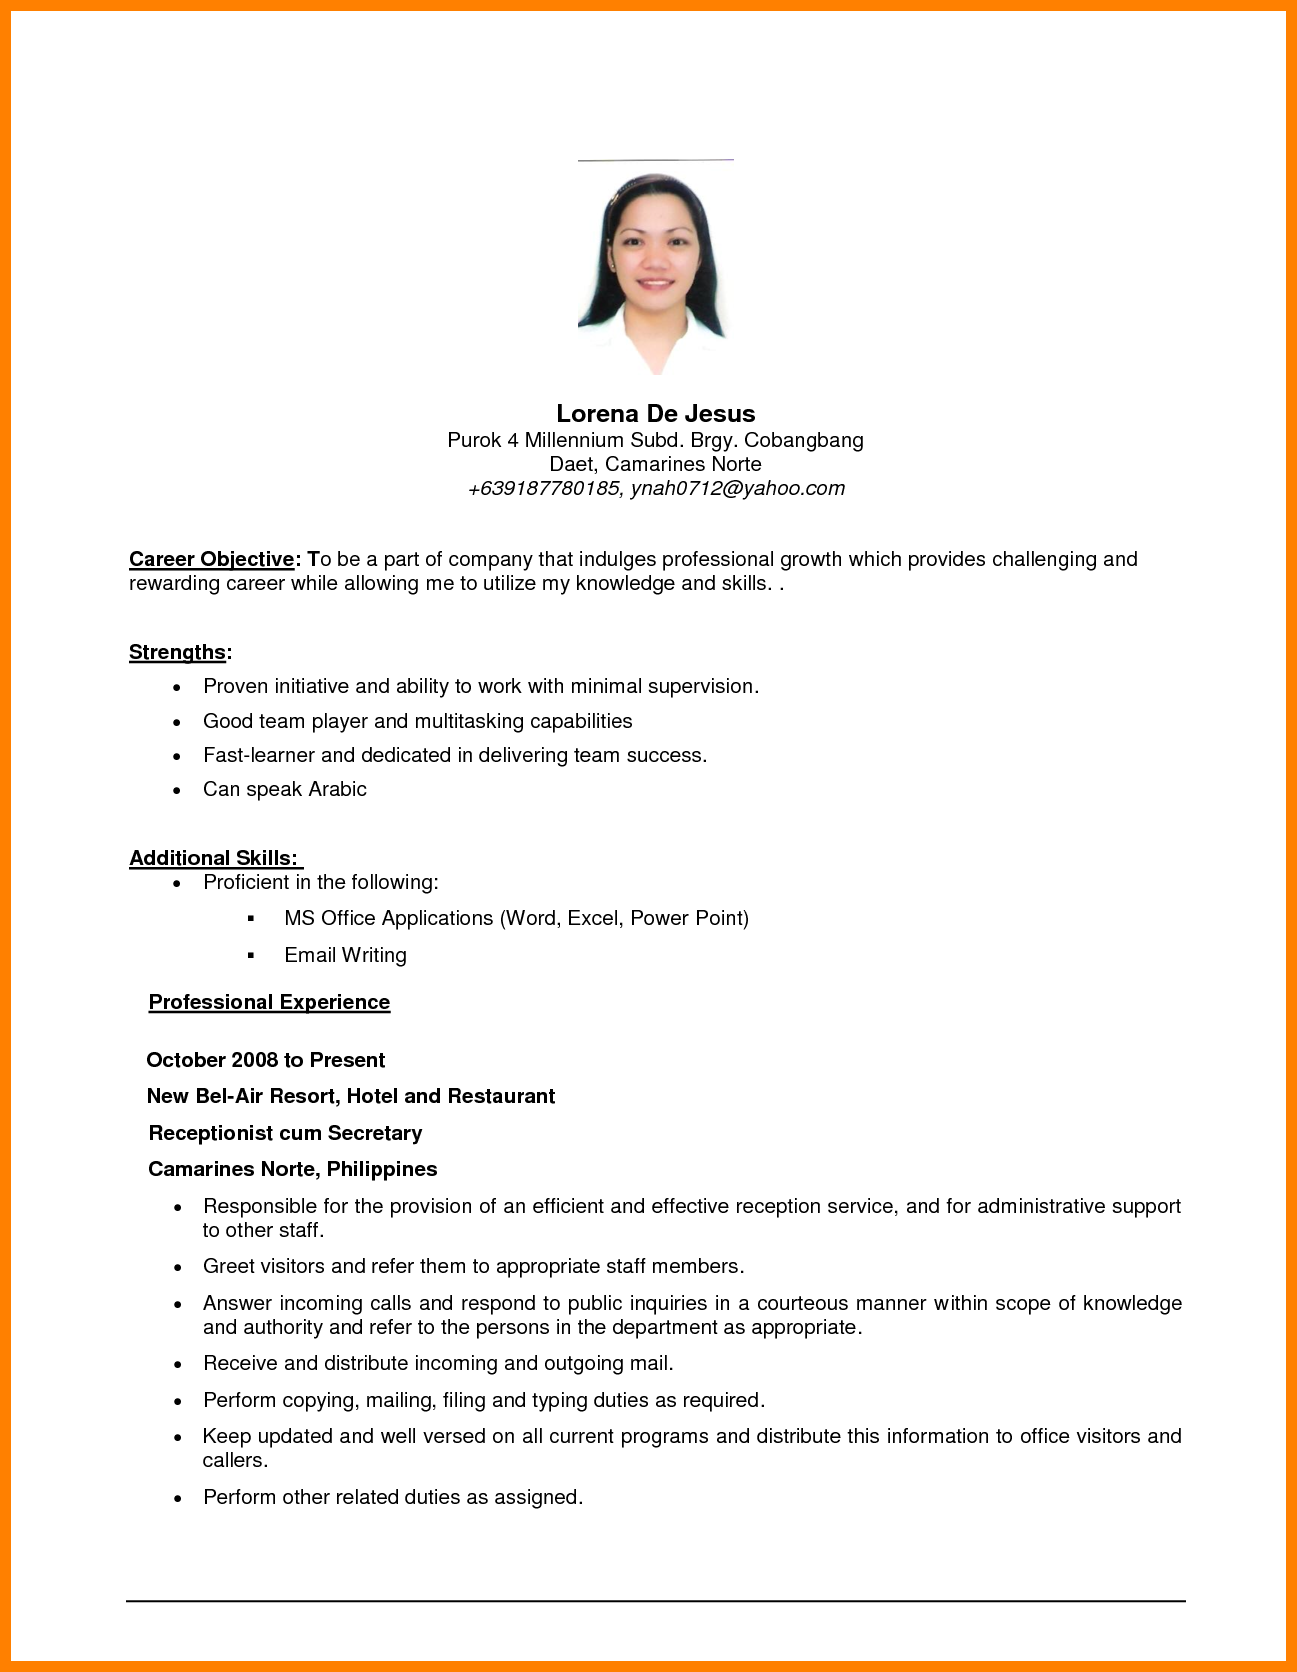 Resume Examples Skills Stunning Resume Objective Sample Computer Skills Examples For Example Your Design Ideas